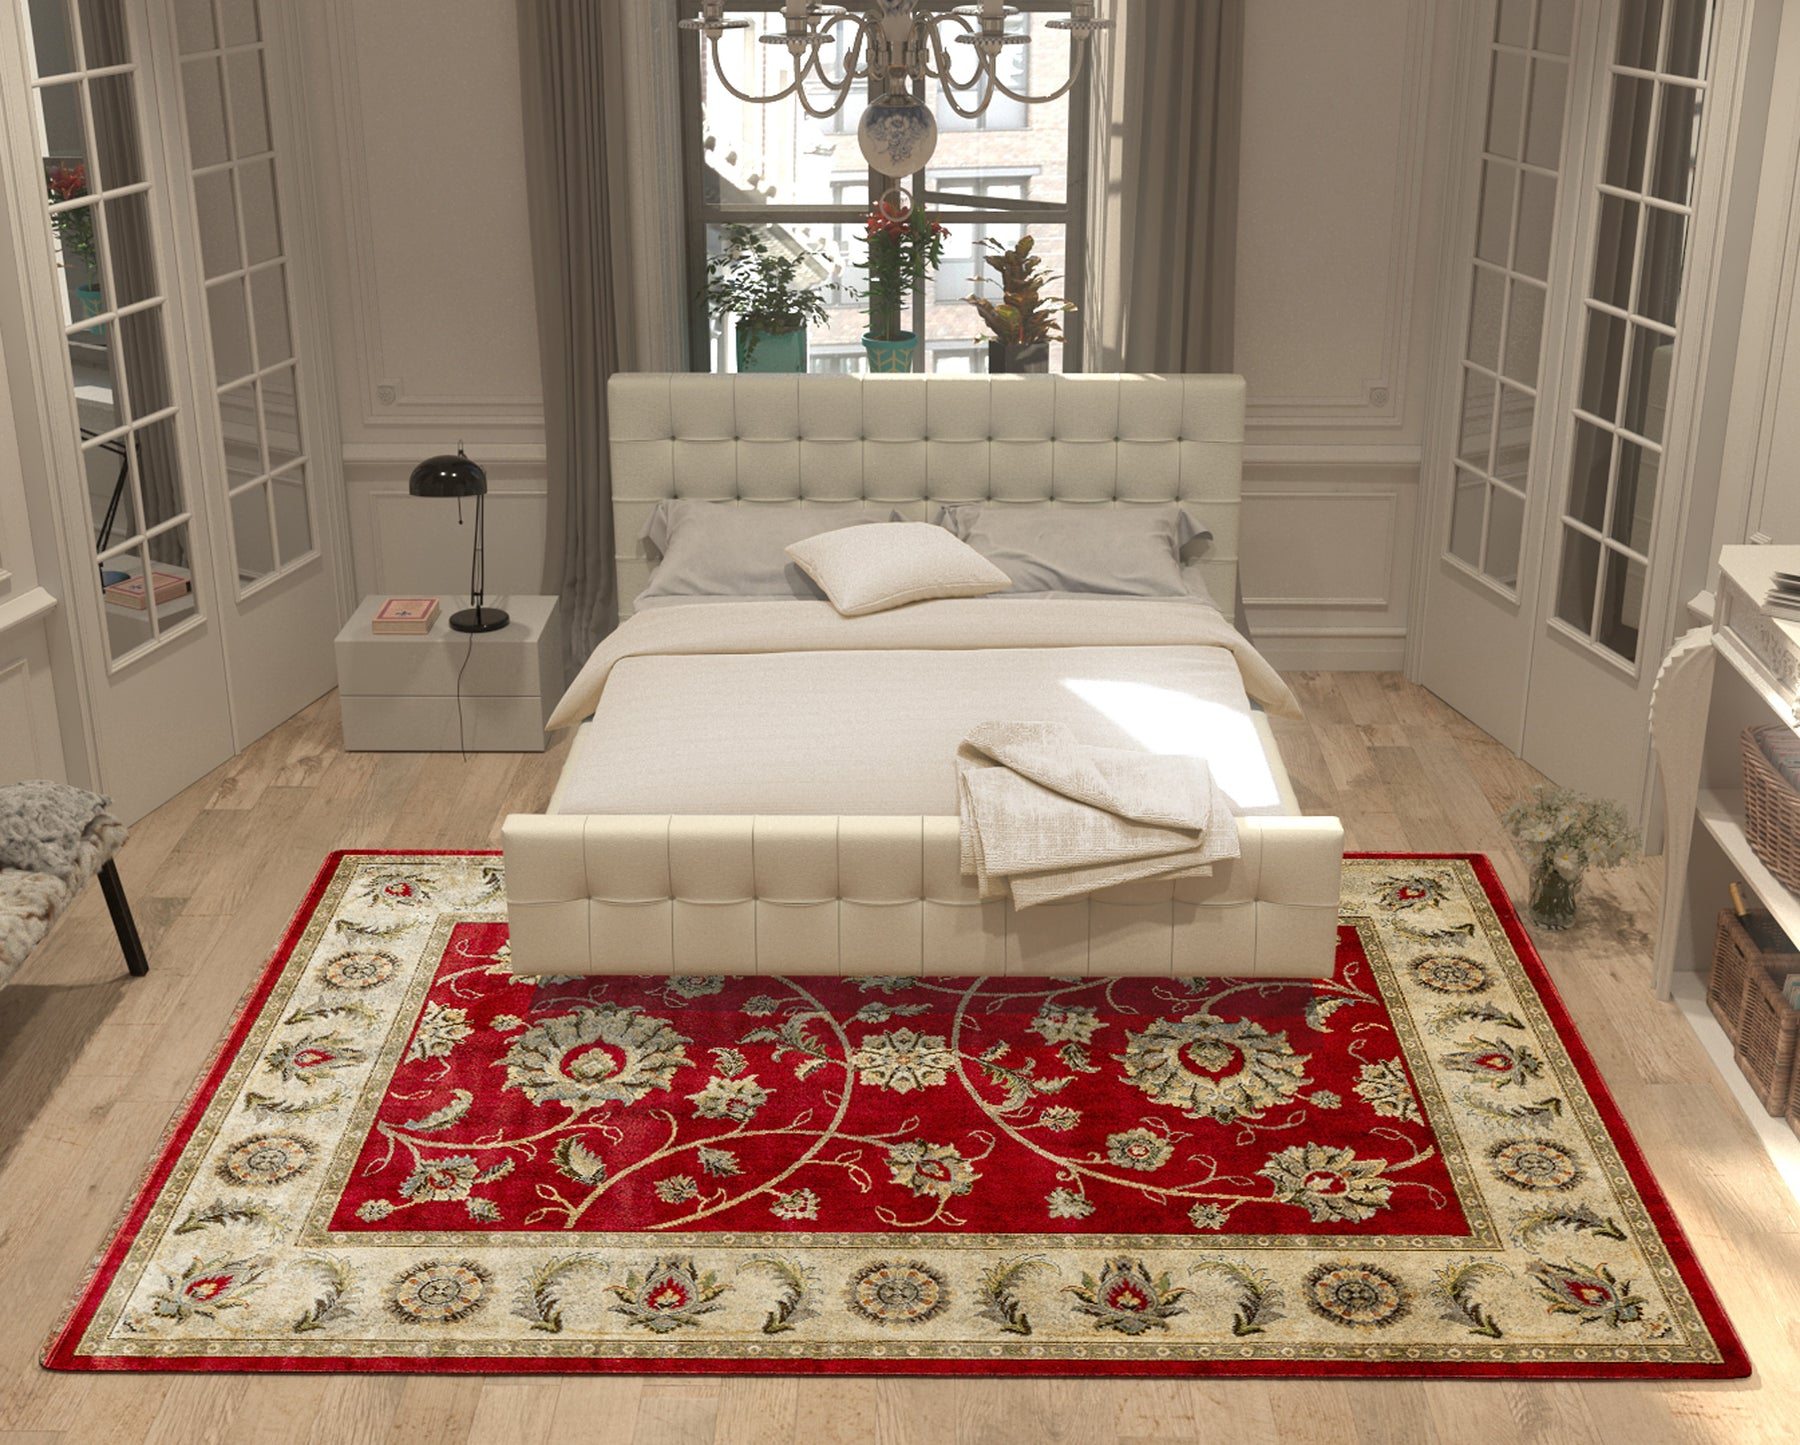 Pairing Rugs with Your Bed: A Bedroom Rug-Sizing and Placement Guide